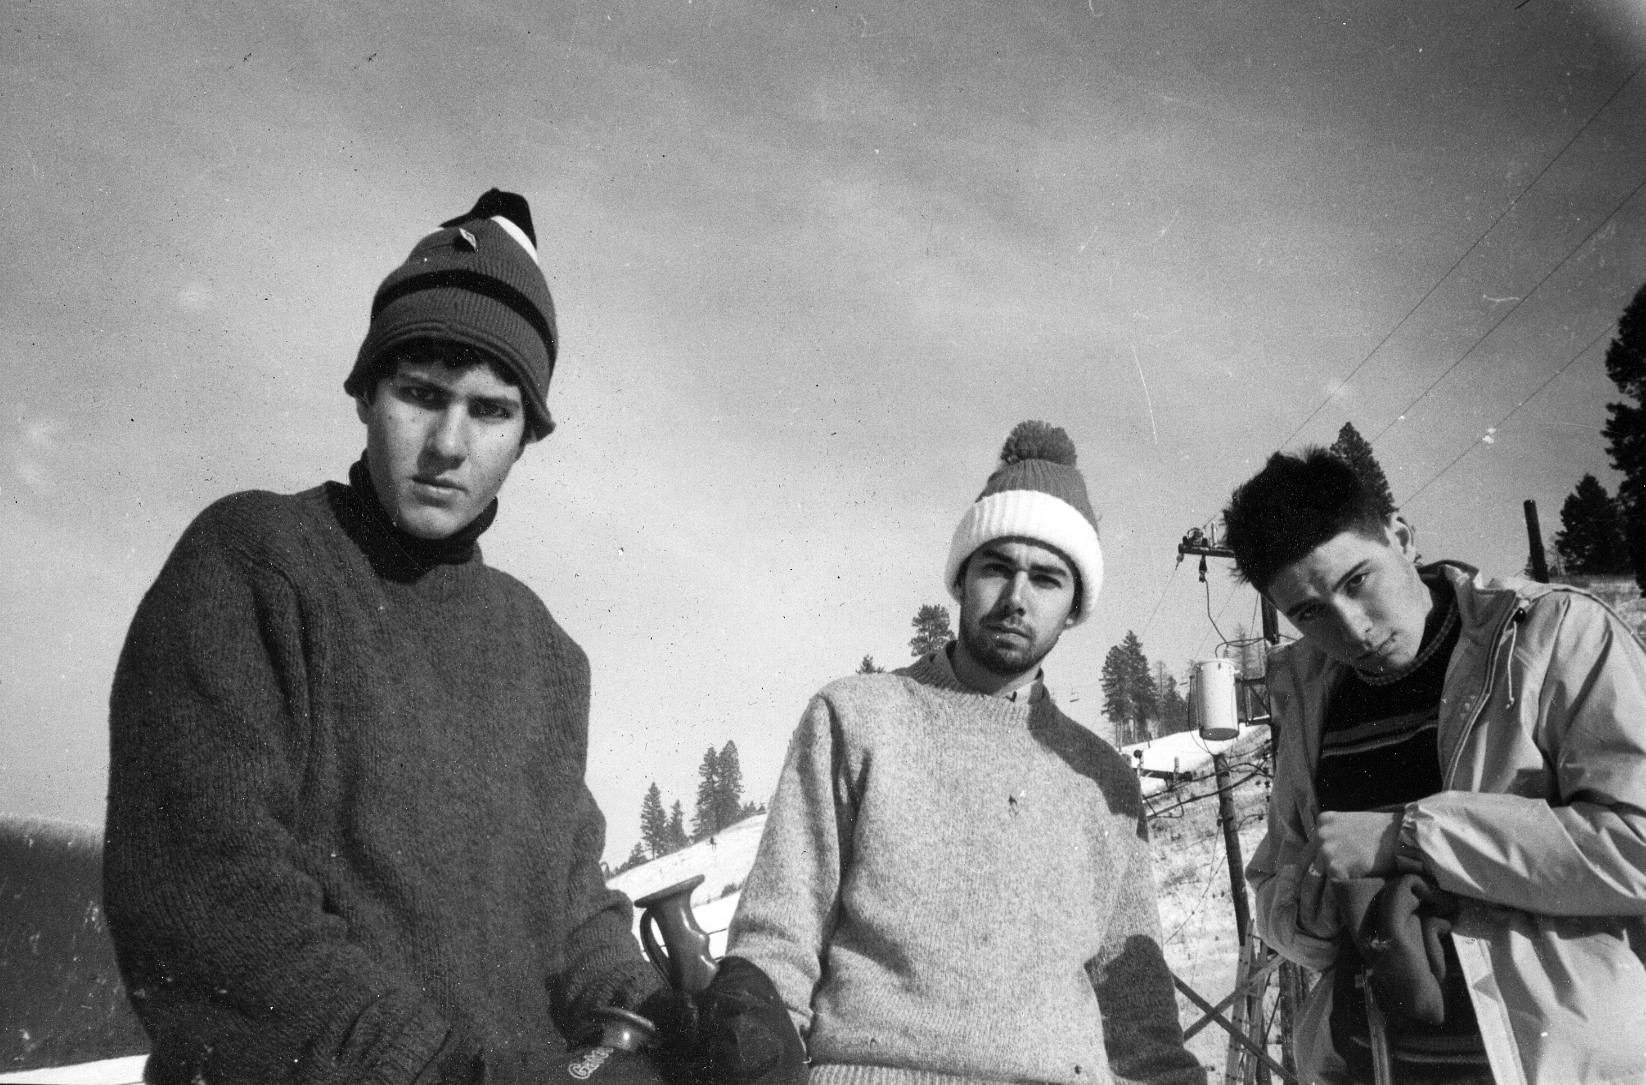 From left: Mike D, MCA and Ad-Rock on the first stop of their Licensed to Ill tour in Missoula, Mont., Jan. 1987.